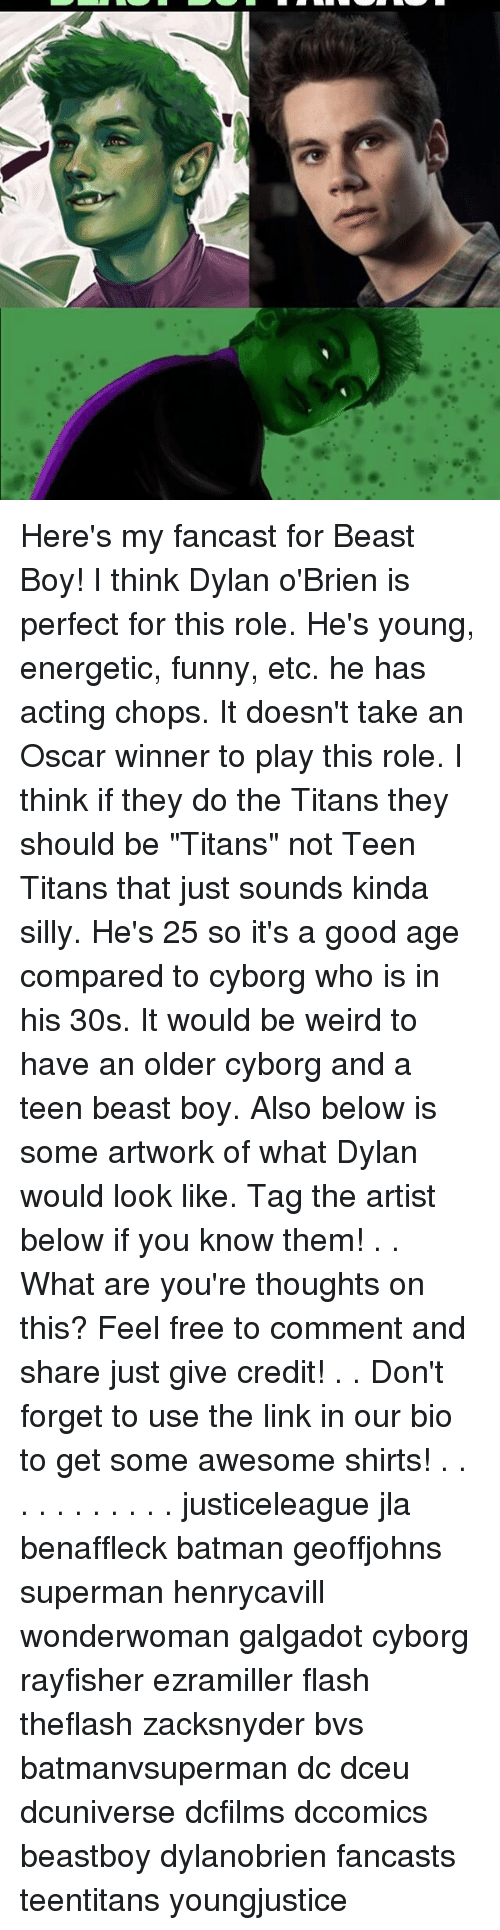 """Memes, 🤖, and The Link: Here's my fancast for Beast Boy! I think Dylan o'Brien is perfect for this role. He's young, energetic, funny, etc. he has acting chops. It doesn't take an Oscar winner to play this role. I think if they do the Titans they should be """"Titans"""" not Teen Titans that just sounds kinda silly. He's 25 so it's a good age compared to cyborg who is in his 30s. It would be weird to have an older cyborg and a teen beast boy. Also below is some artwork of what Dylan would look like. Tag the artist below if you know them! . . What are you're thoughts on this? Feel free to comment and share just give credit! . . Don't forget to use the link in our bio to get some awesome shirts! . . . . . . . . . . . justiceleague jla benaffleck batman geoffjohns superman henrycavill wonderwoman galgadot cyborg rayfisher ezramiller flash theflash zacksnyder bvs batmanvsuperman dc dceu dcuniverse dcfilms dccomics beastboy dylanobrien fancasts teentitans youngjustice"""